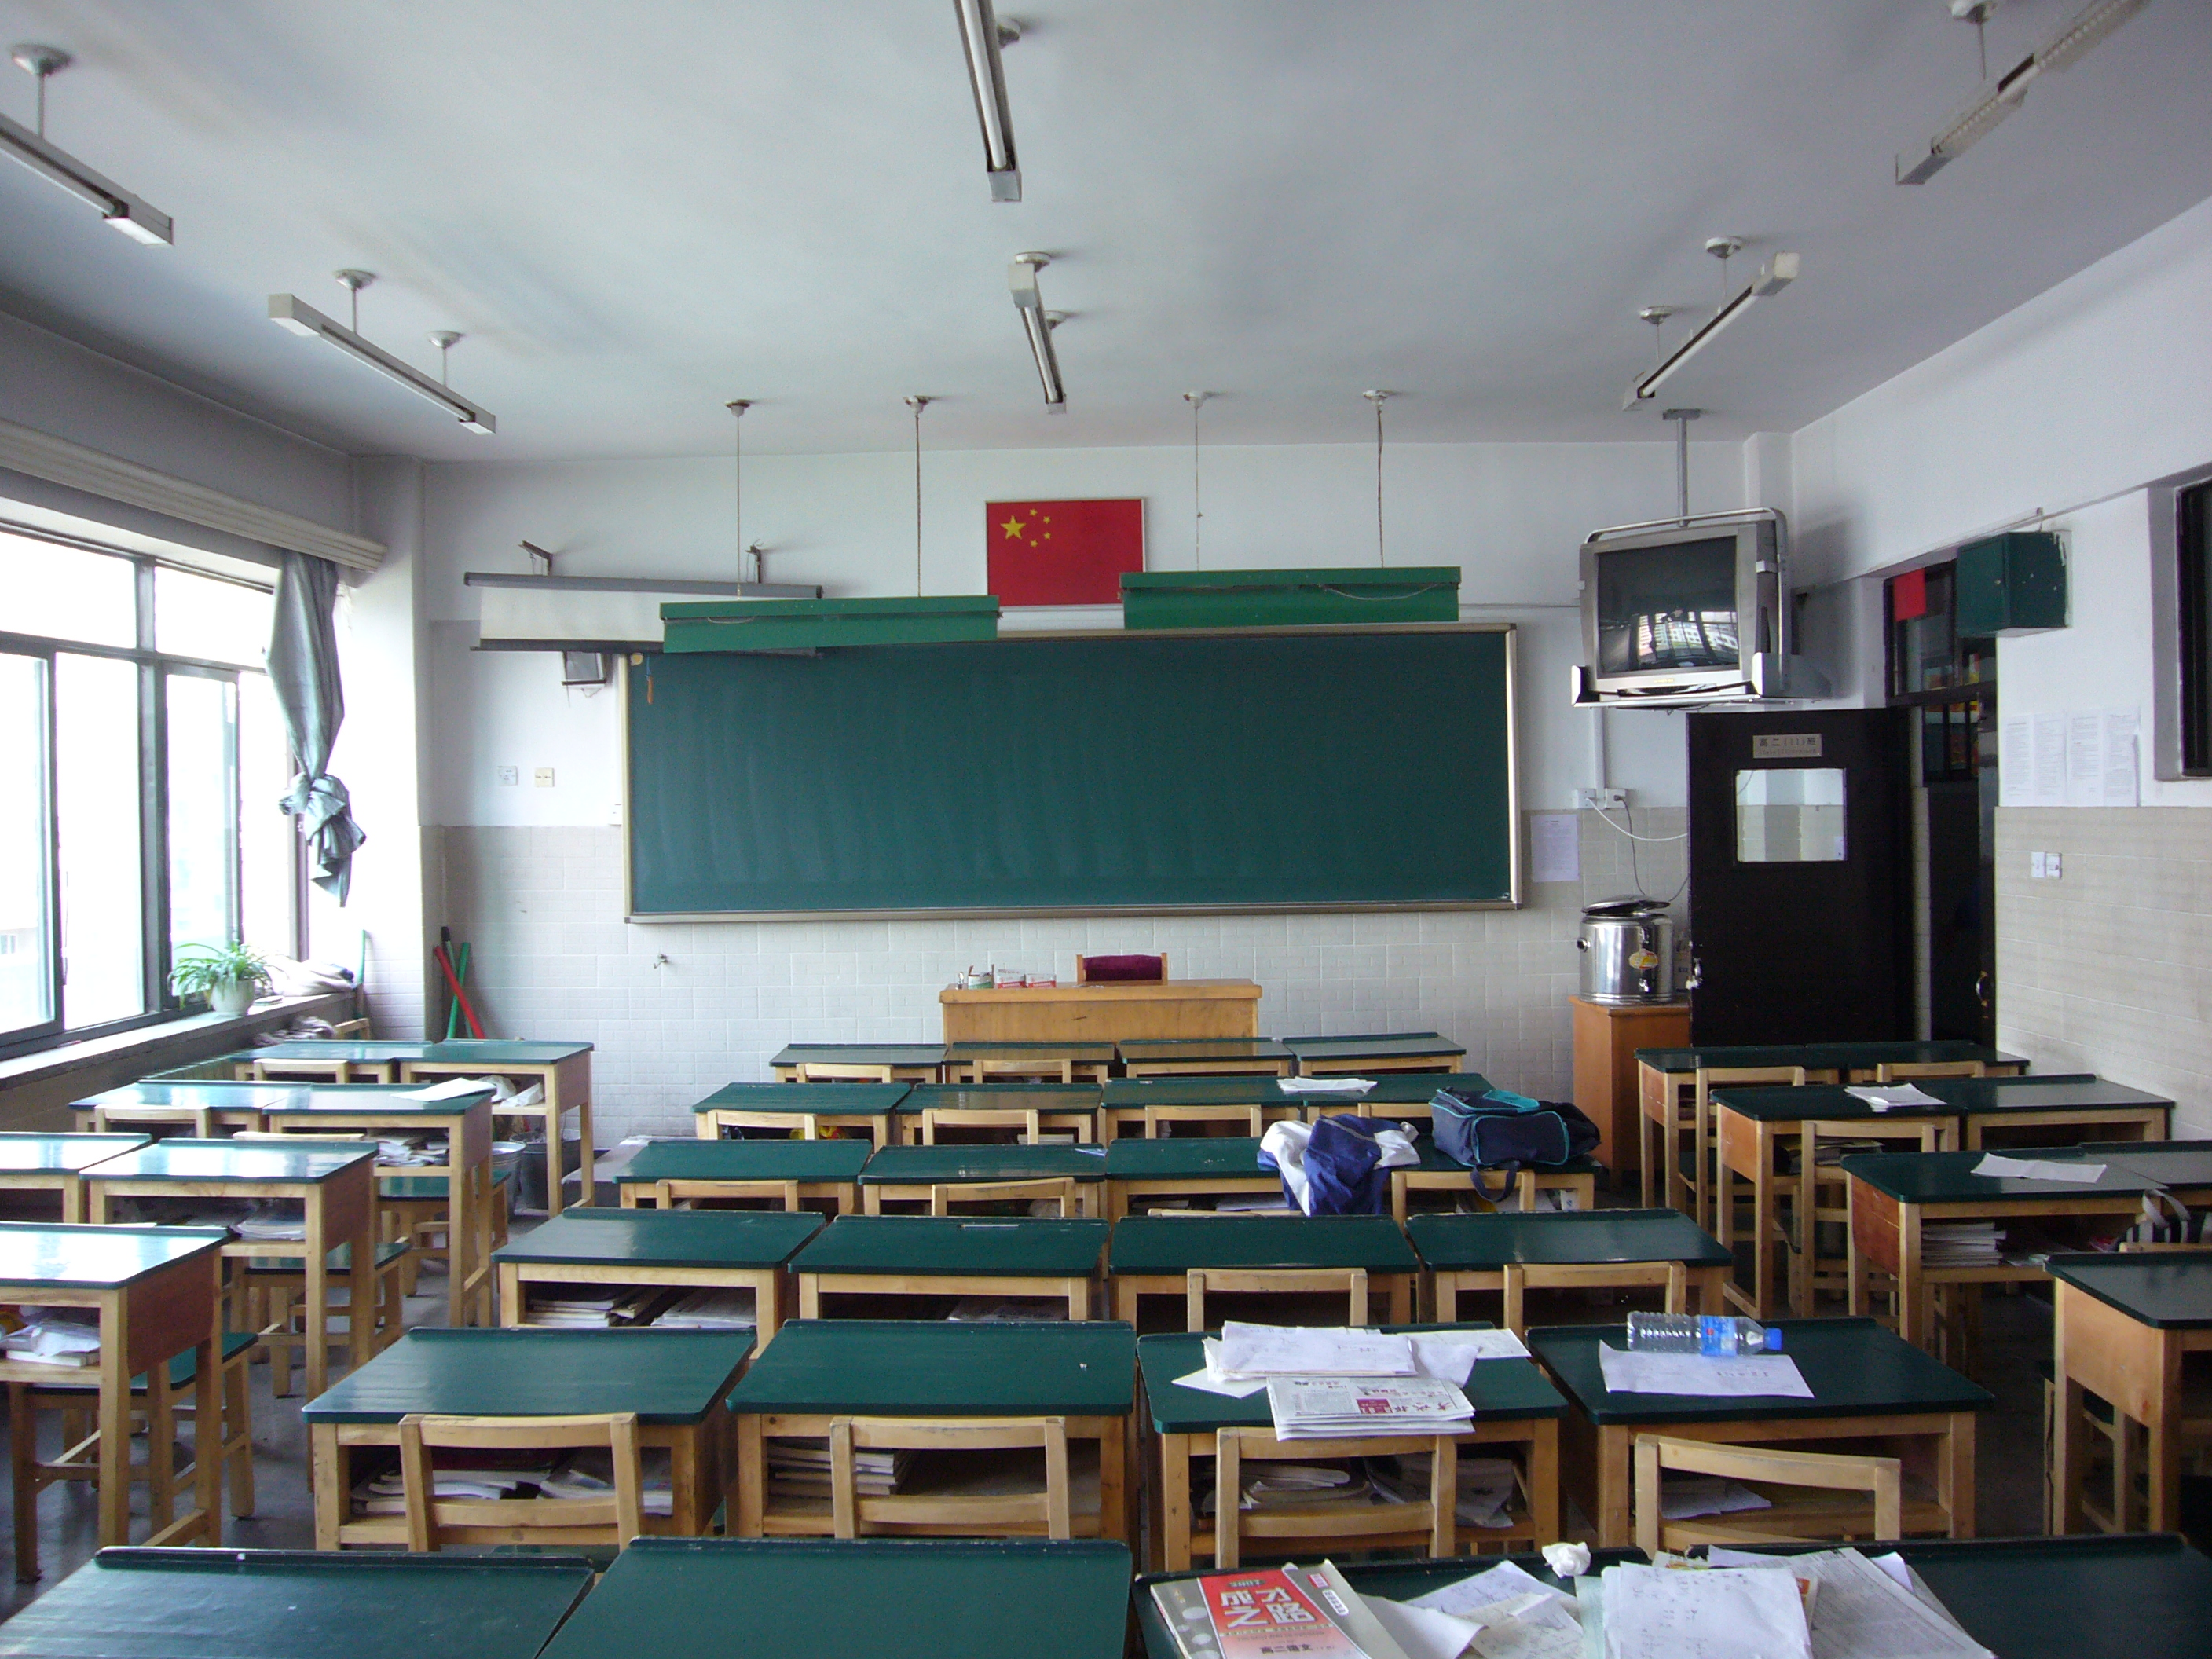 File Classroom Urumqi No 1 High School Jpg Wikimedia Commons